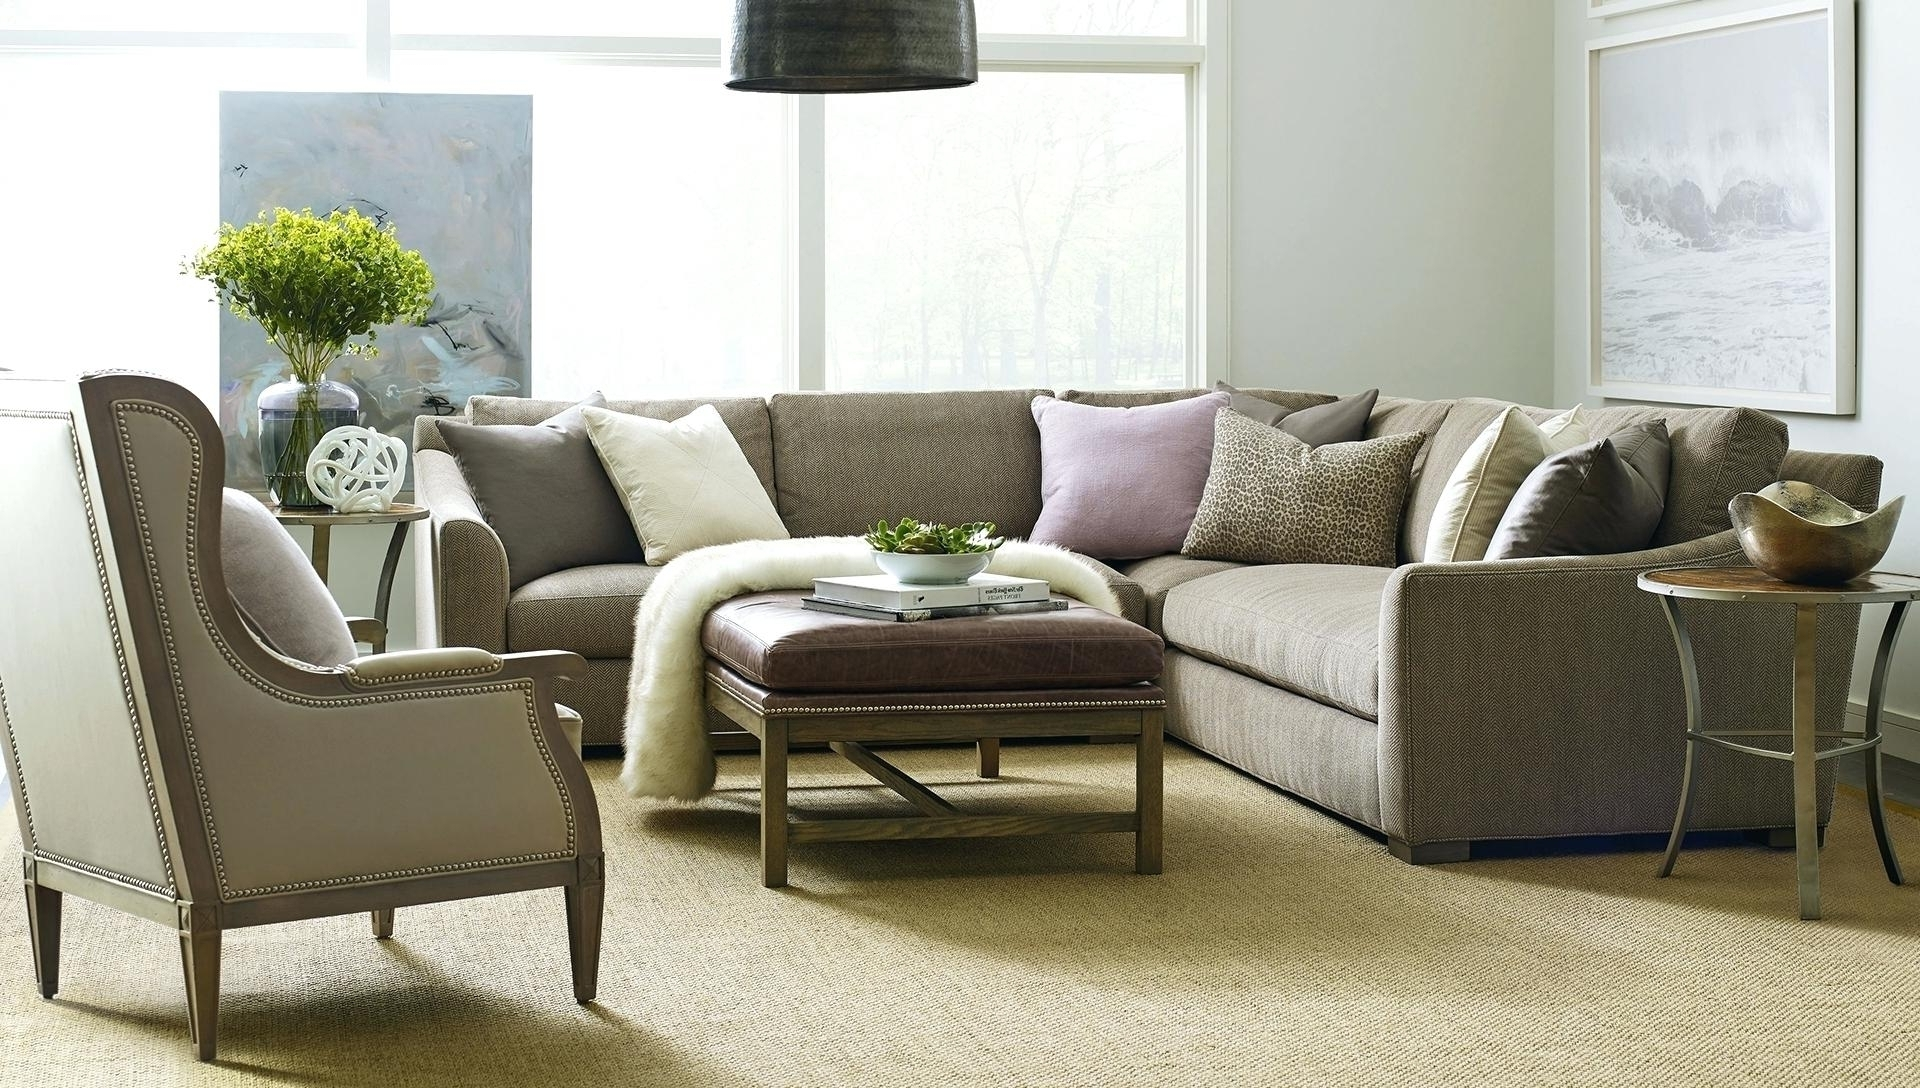 2018 Latest Gatineau Sectional Sofas With Regard To Gatineau Sectional Sofas (Image 8 of 10)